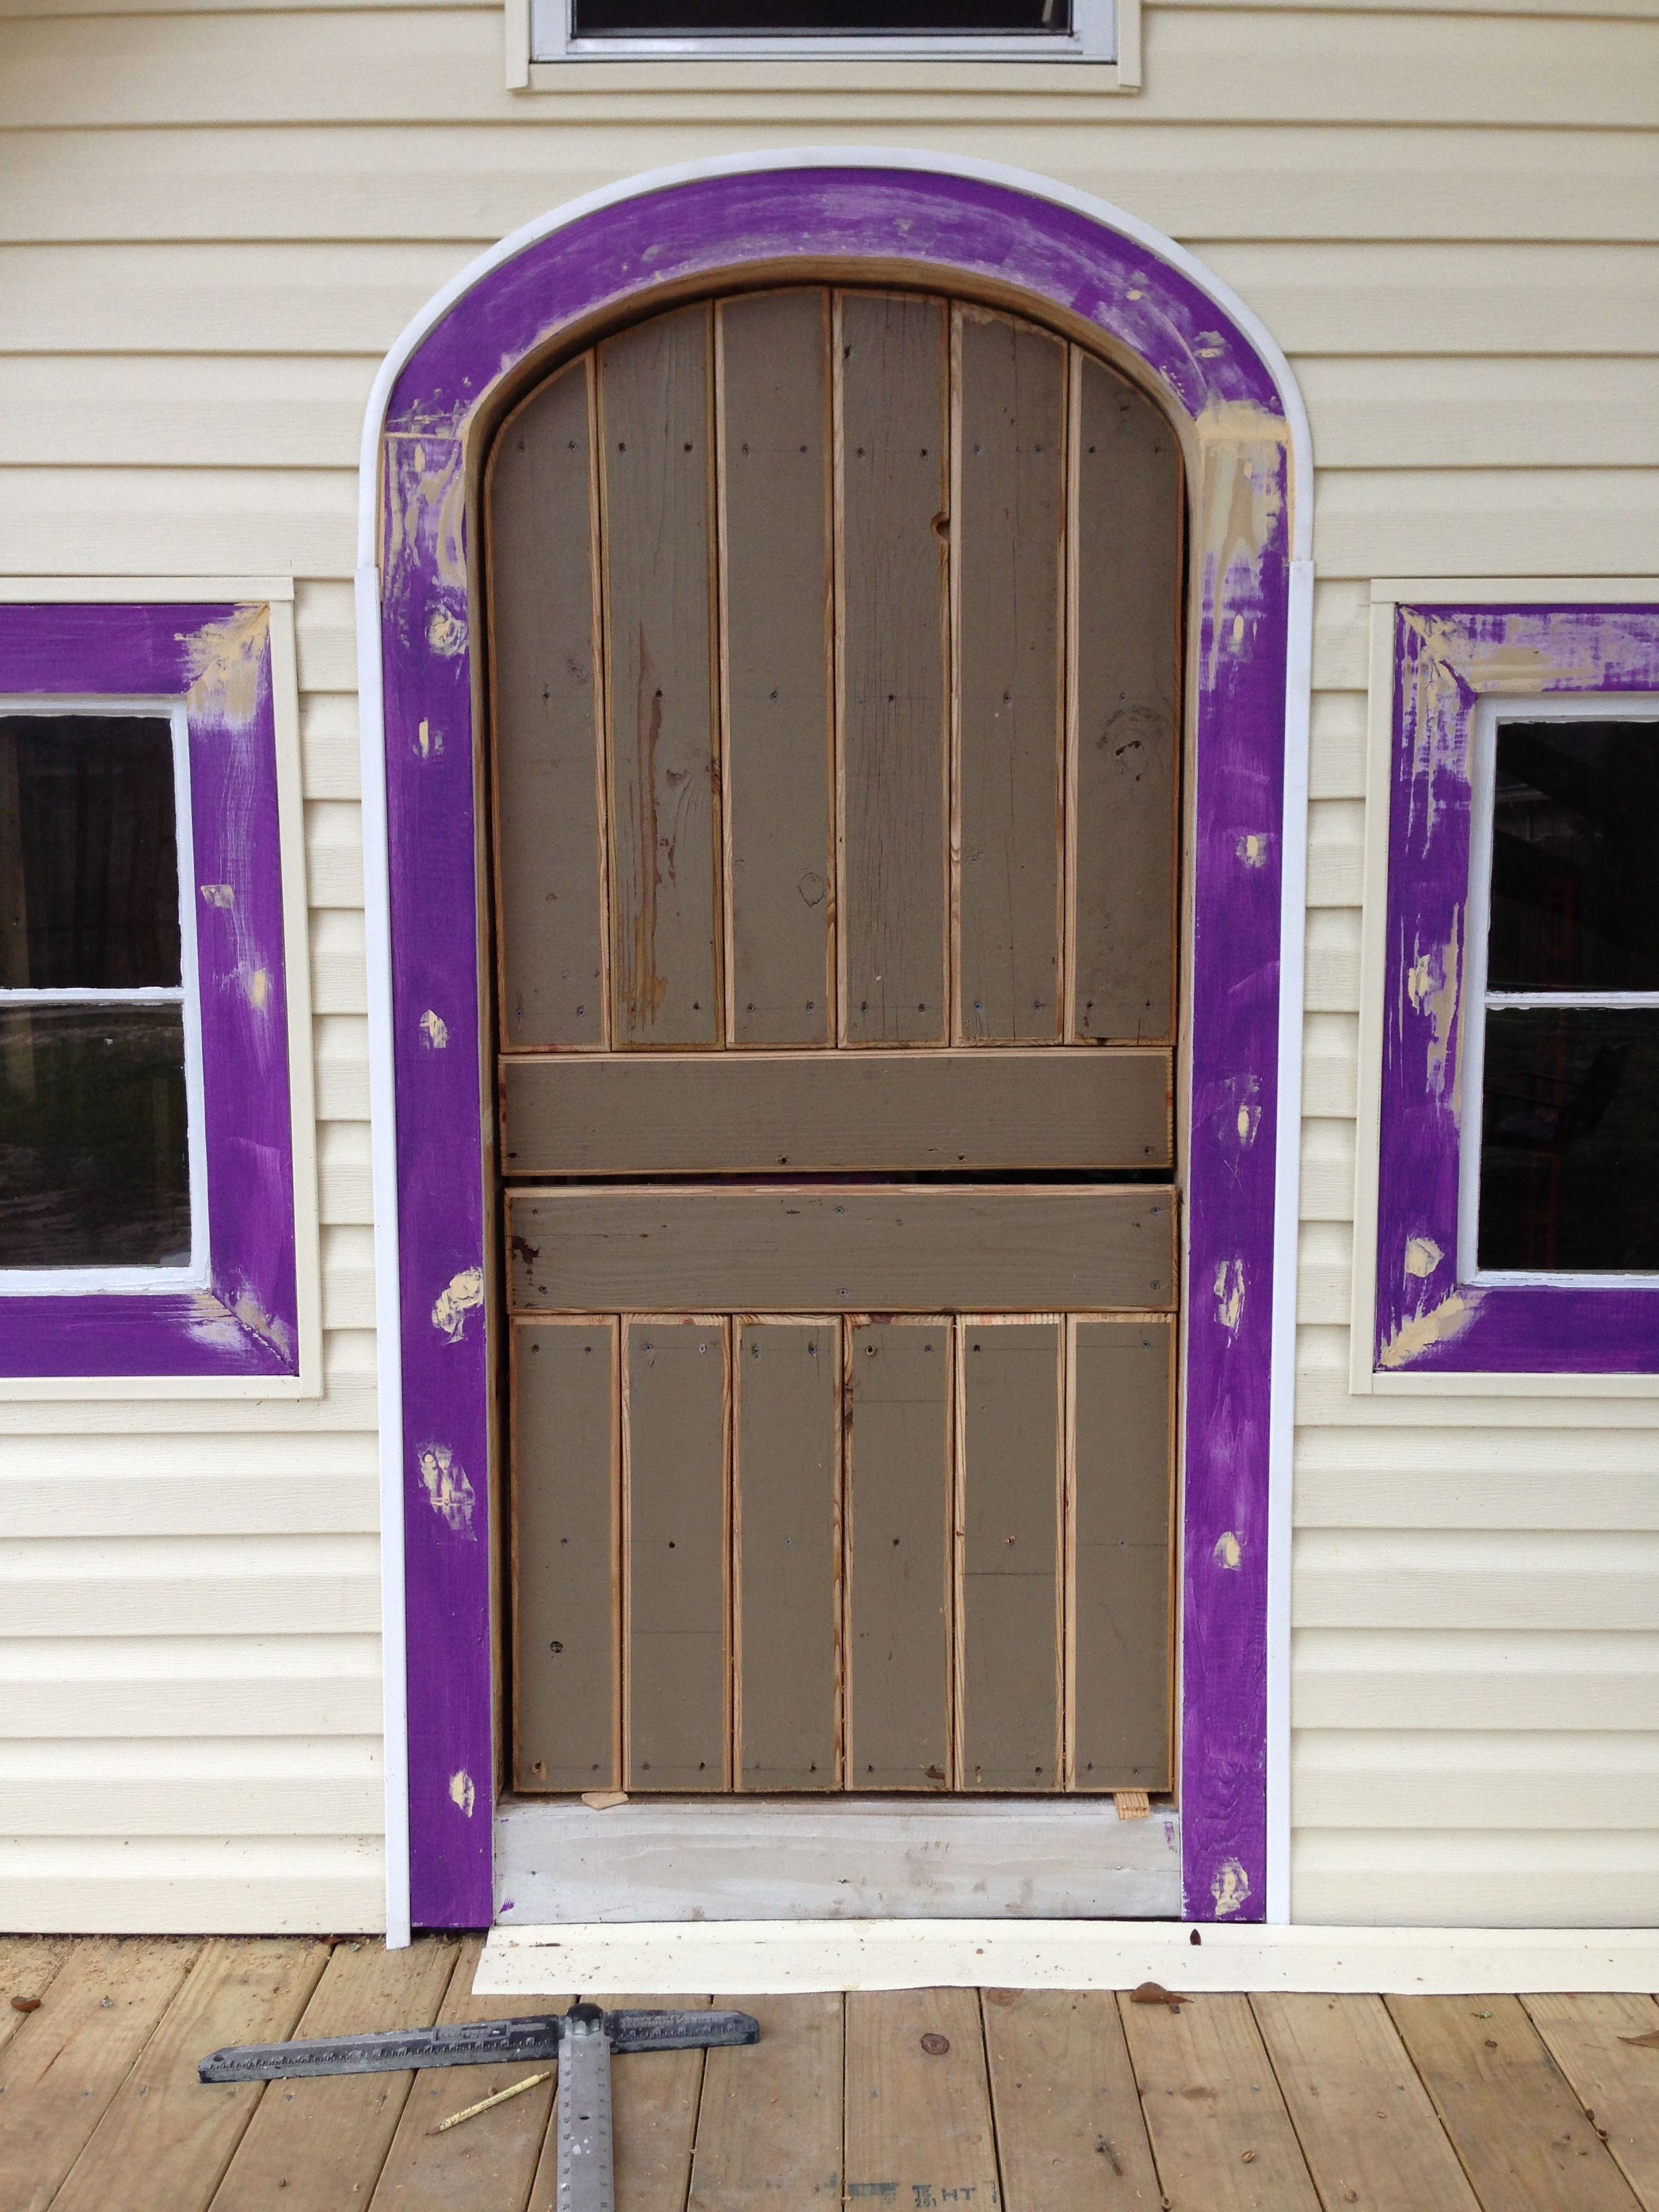 Liviu0027s Playhouse   Having To Make Doors , Because It Is Only 5 Feet Tall  And Arched And A Dutch Door . Very Time Consuming .